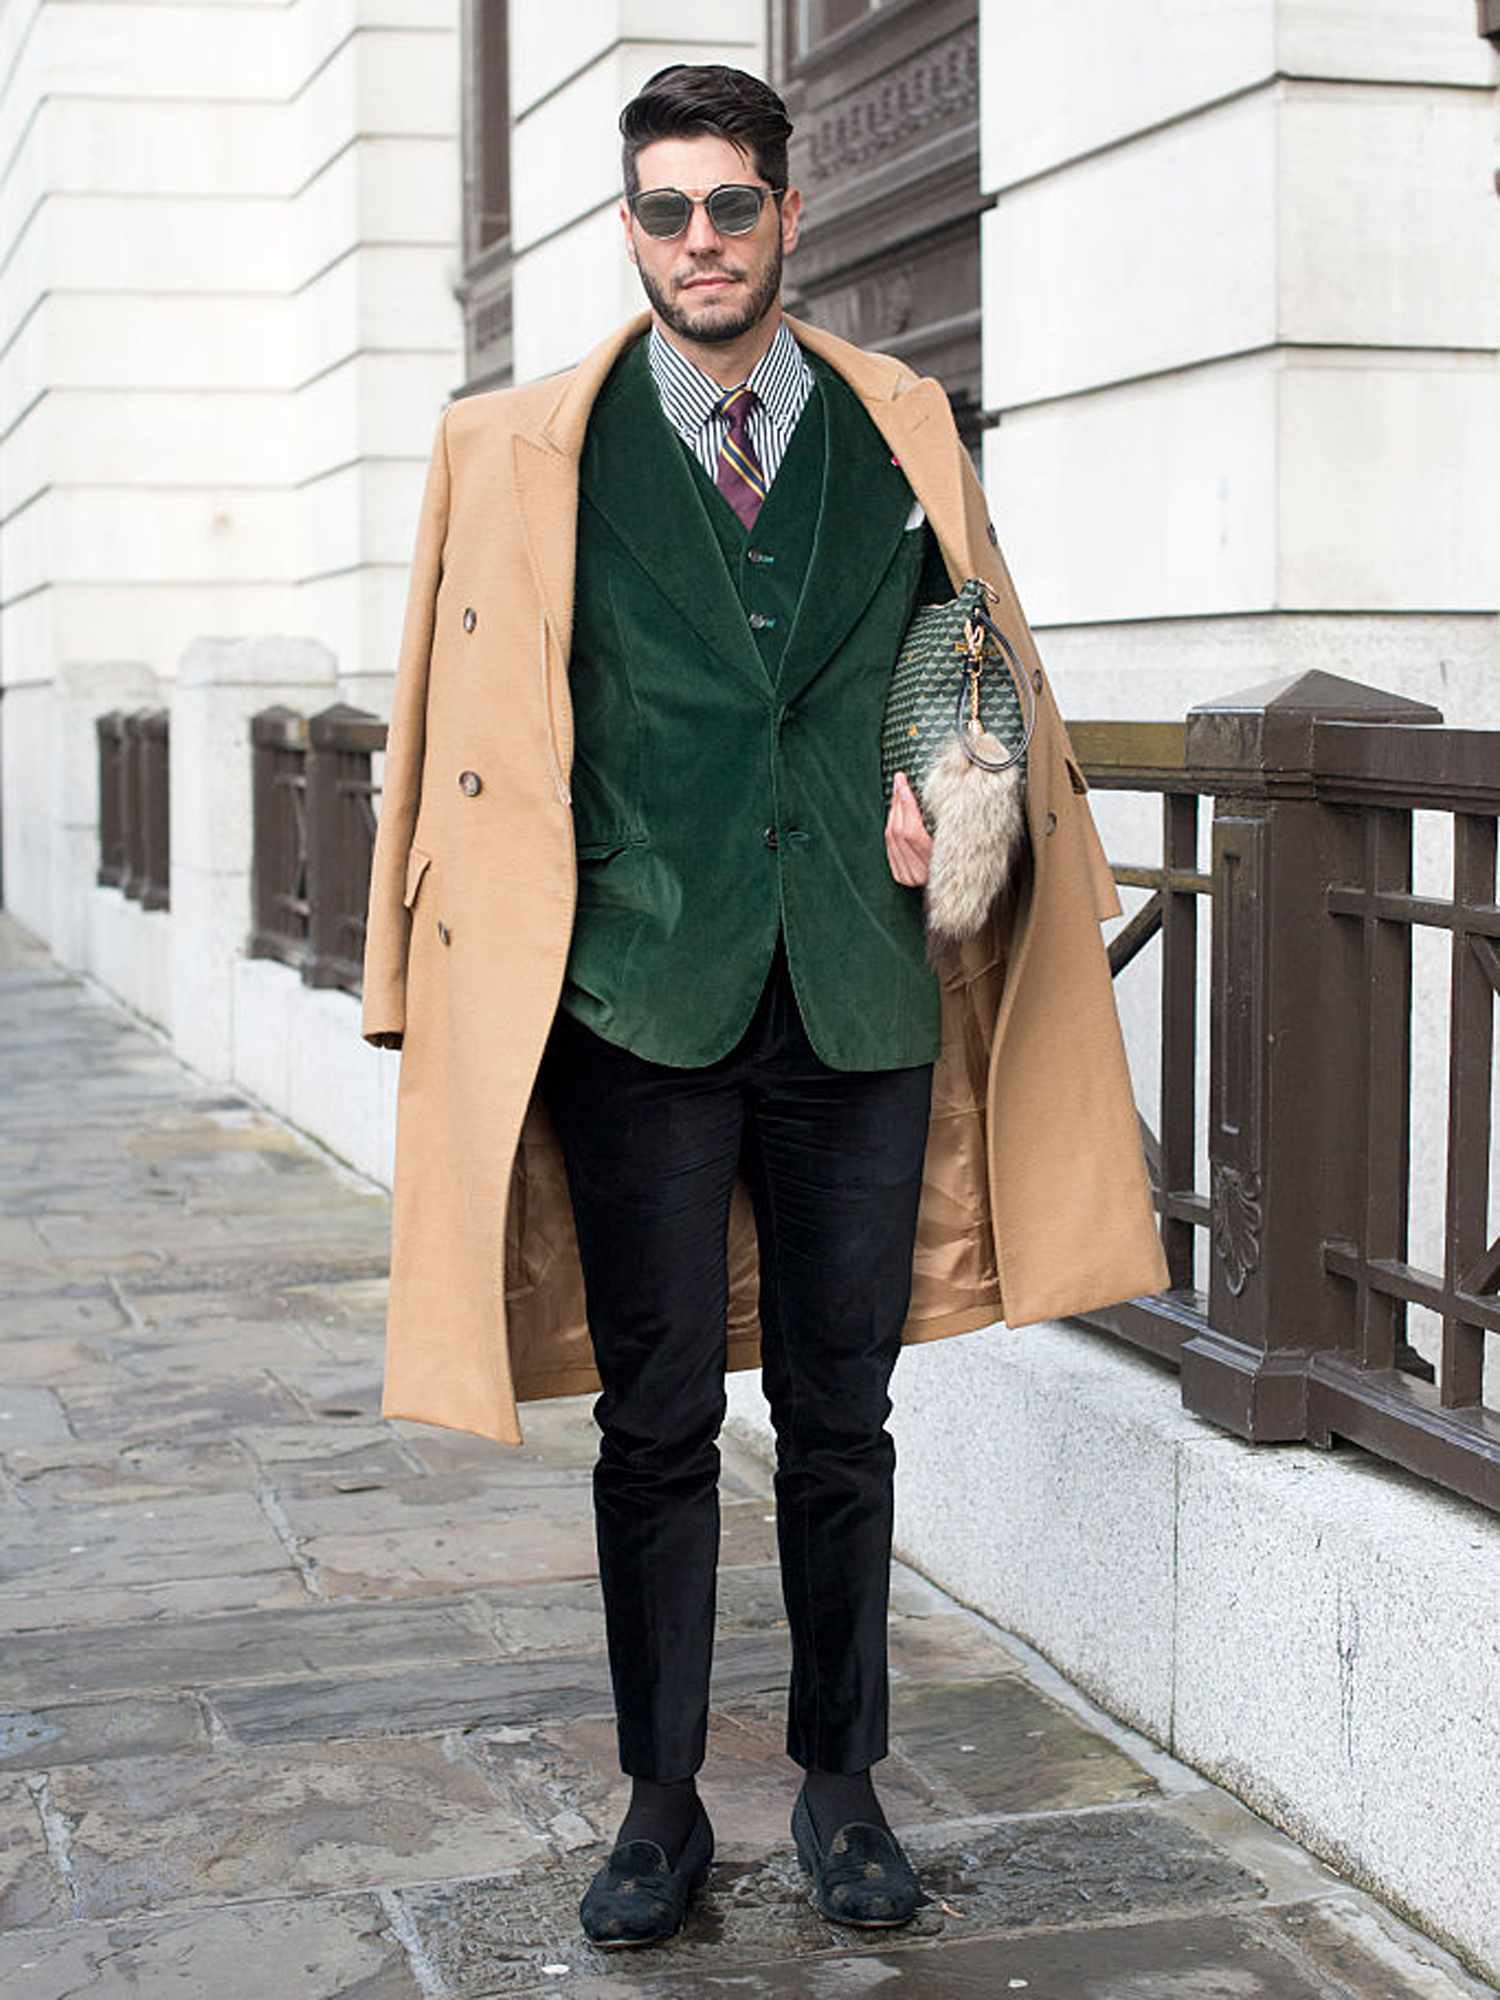 LONDON, ENGLAND - JANUARY 10: Fashion editor Kadu Dantas wearing a Margiella coat, Loja Vitor Alfaiate blazer and waistcoat, Zara trousers, Bluebird shoes, Fauve le Page clutch bag and Dior sunglasses on day 2 of London Collections: Men on January 10, 2015 in London, England. (Photo by Kirstin Sinclair/Getty Images)